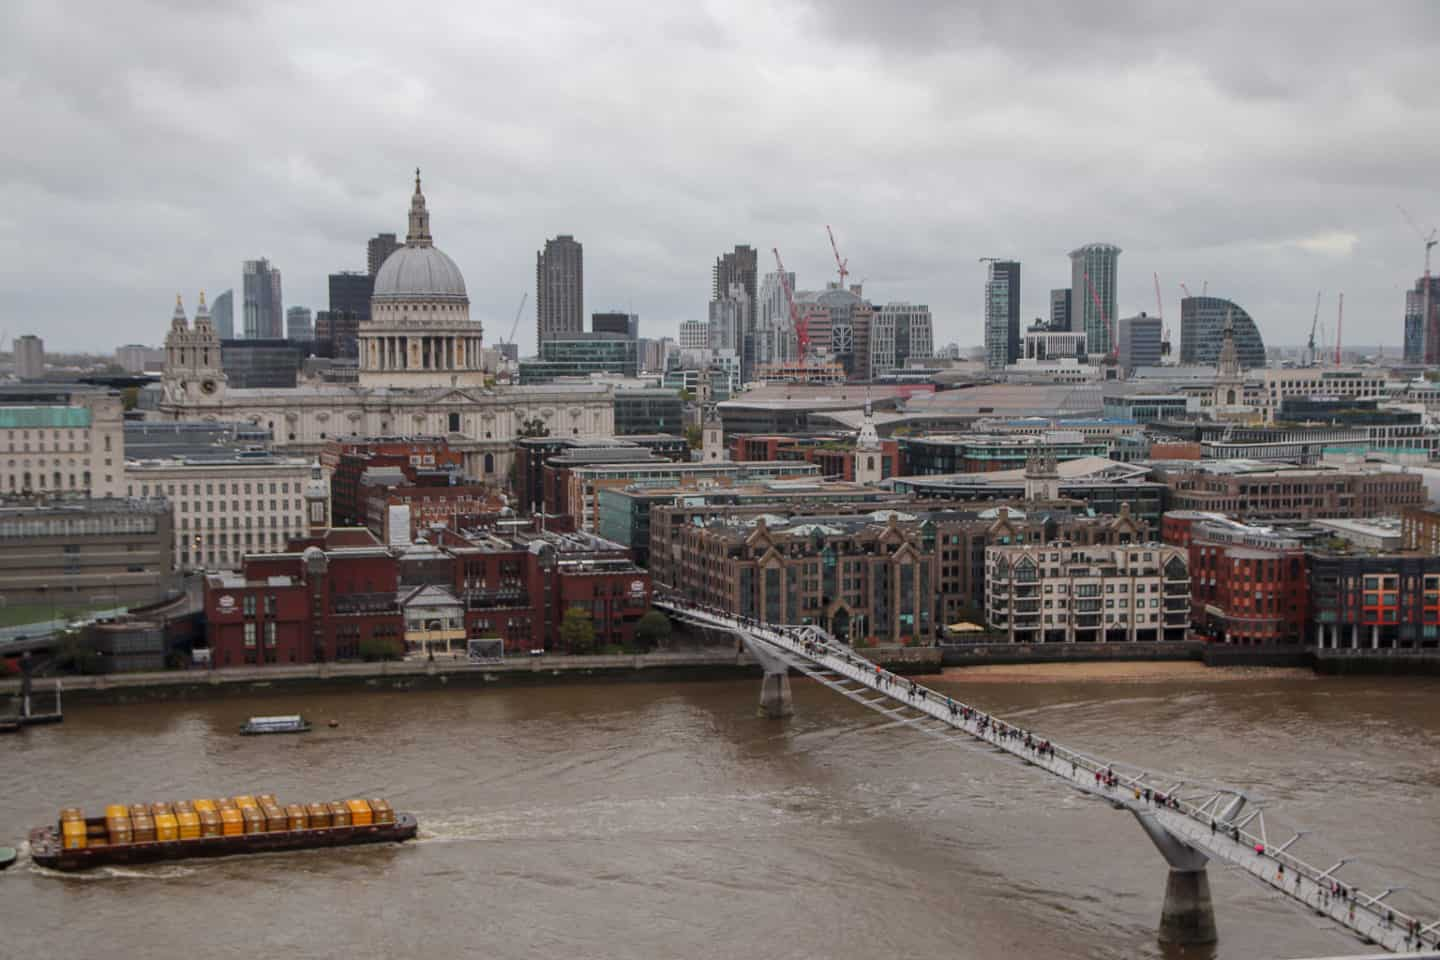 One of the best views of London is the one at the Tate Modern Observatory